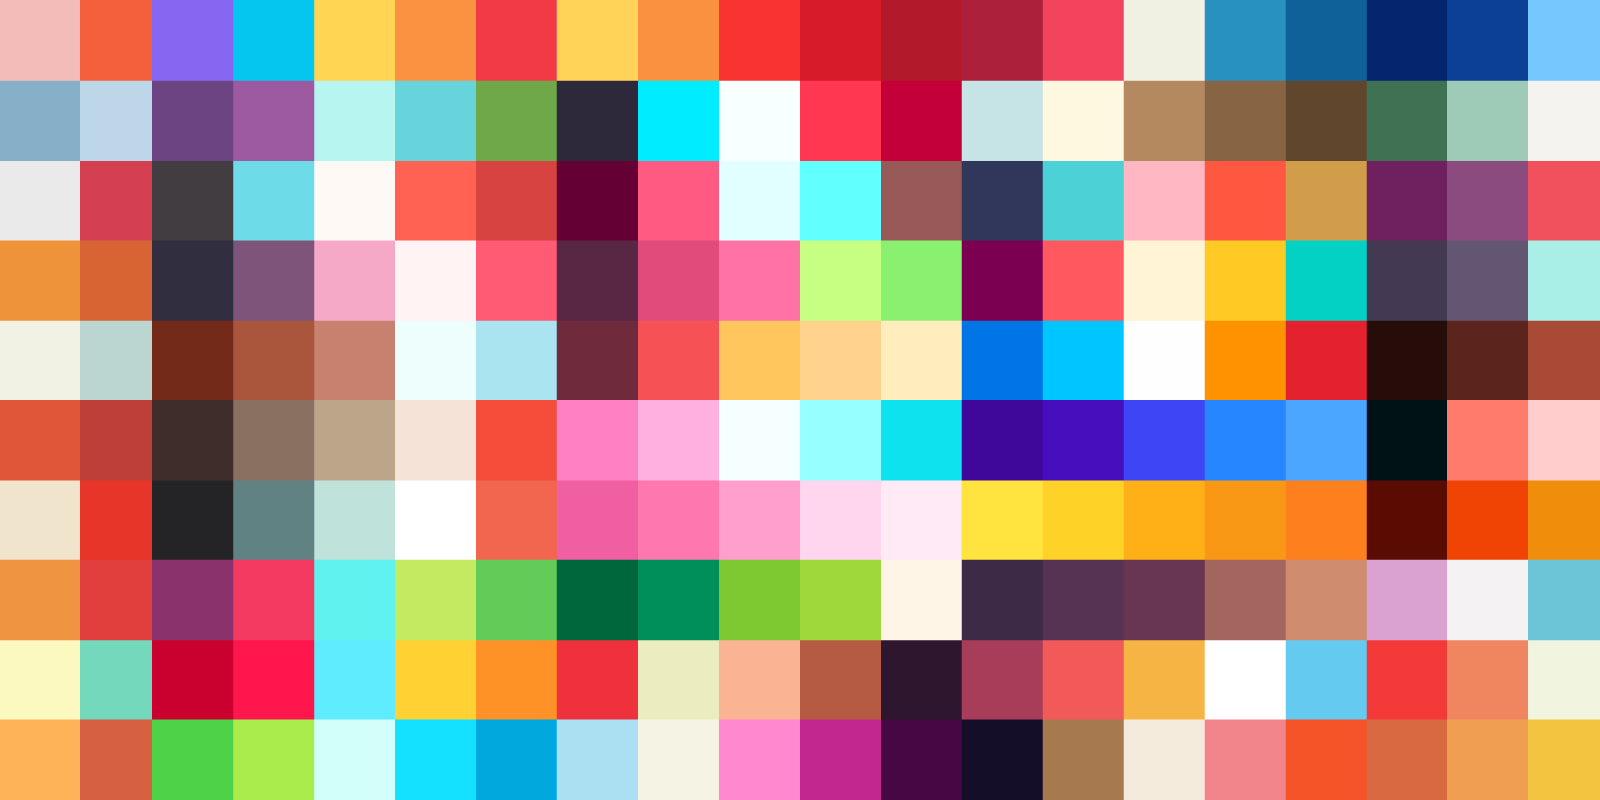 A graphic comprised of colored squares.